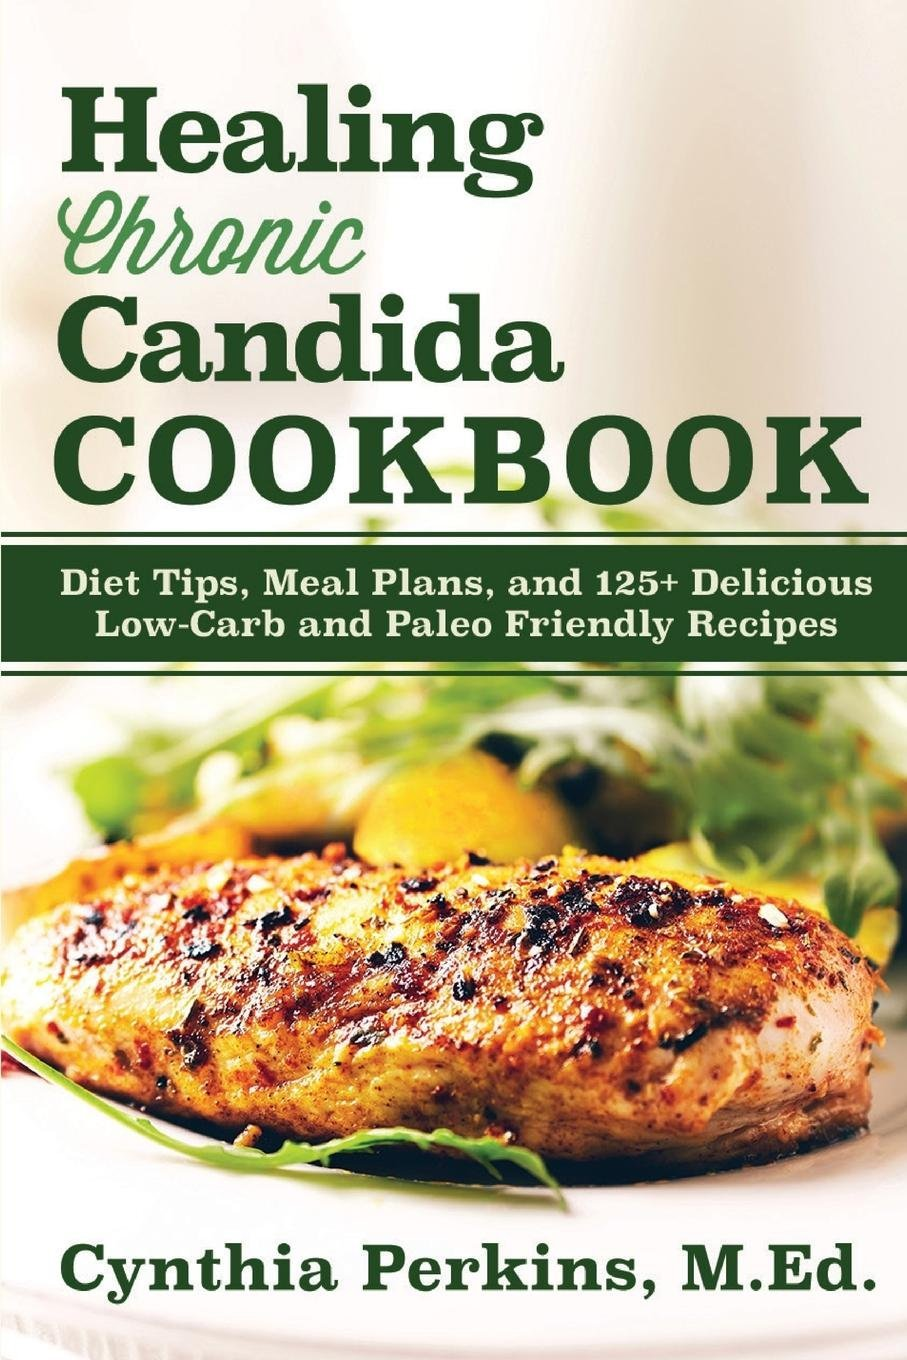 Healing Chronic Candida Cookbook Cynthia product image